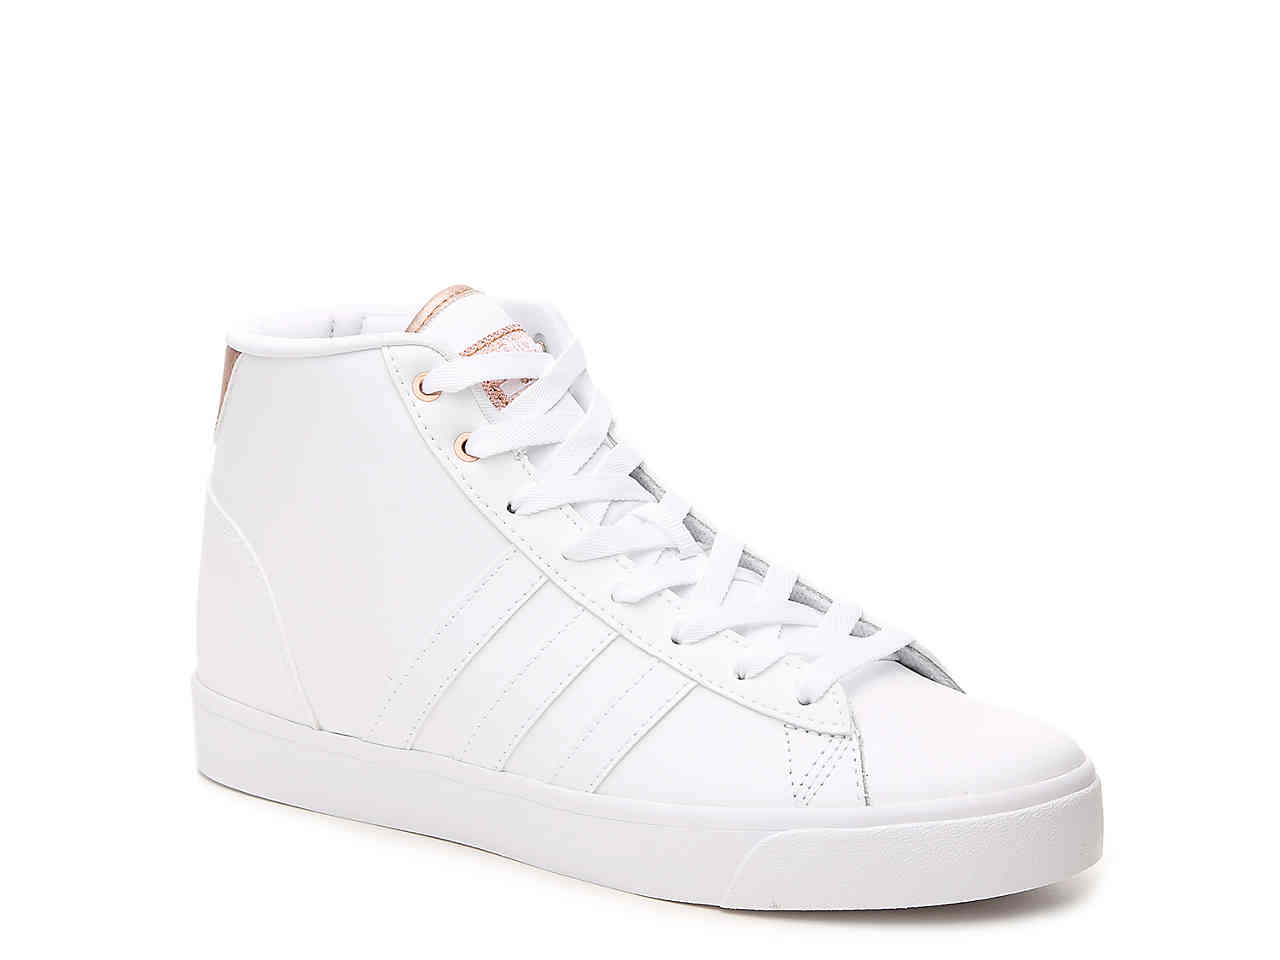 ADIDAS CLOUDFOAM DAILY QT HIGH-TOP SNEAKER - WOMEN'S